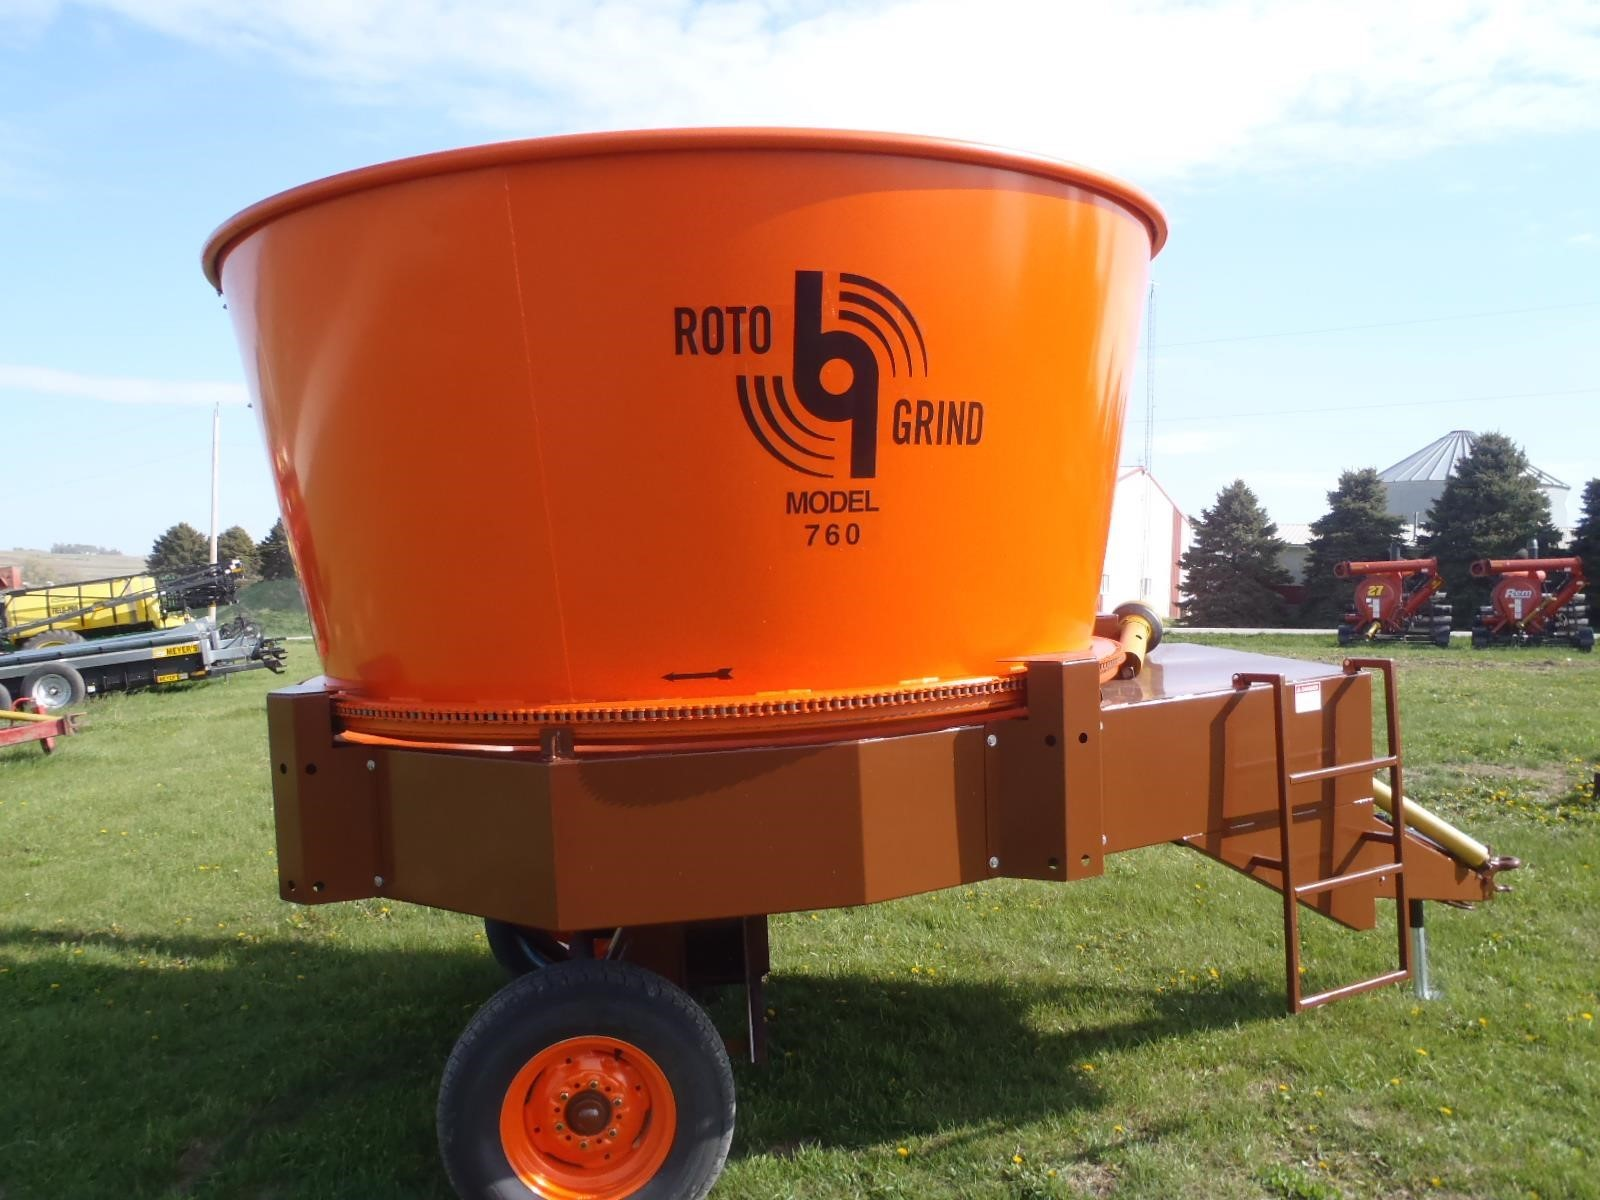 2021 Roto Grind 760 Grinders and Mixer